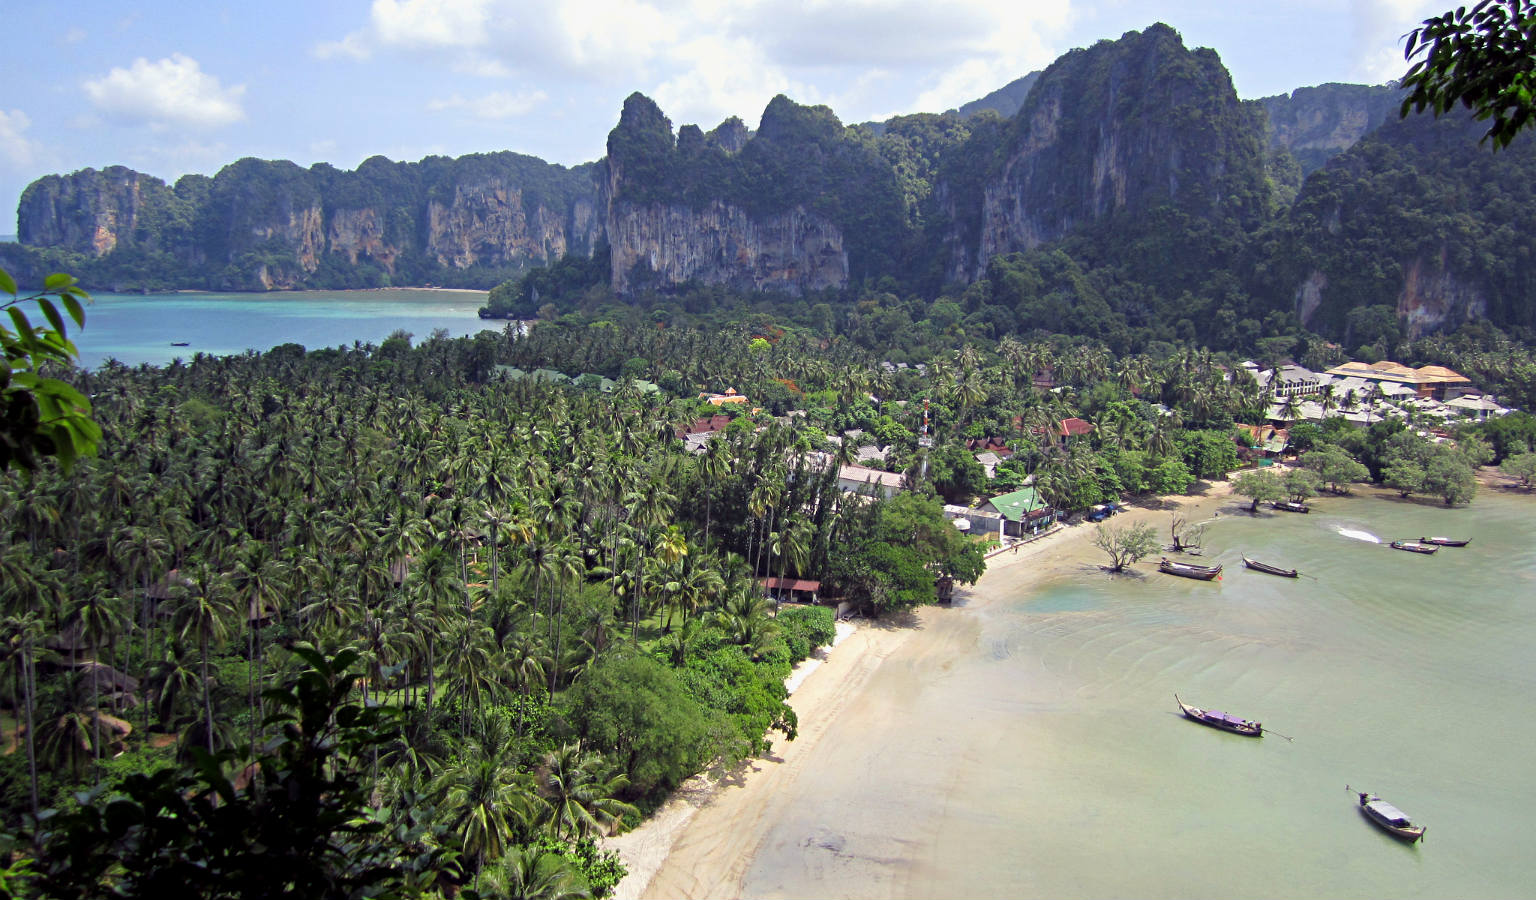 View of the beaches of Railay East and Railay West from the viewpoint